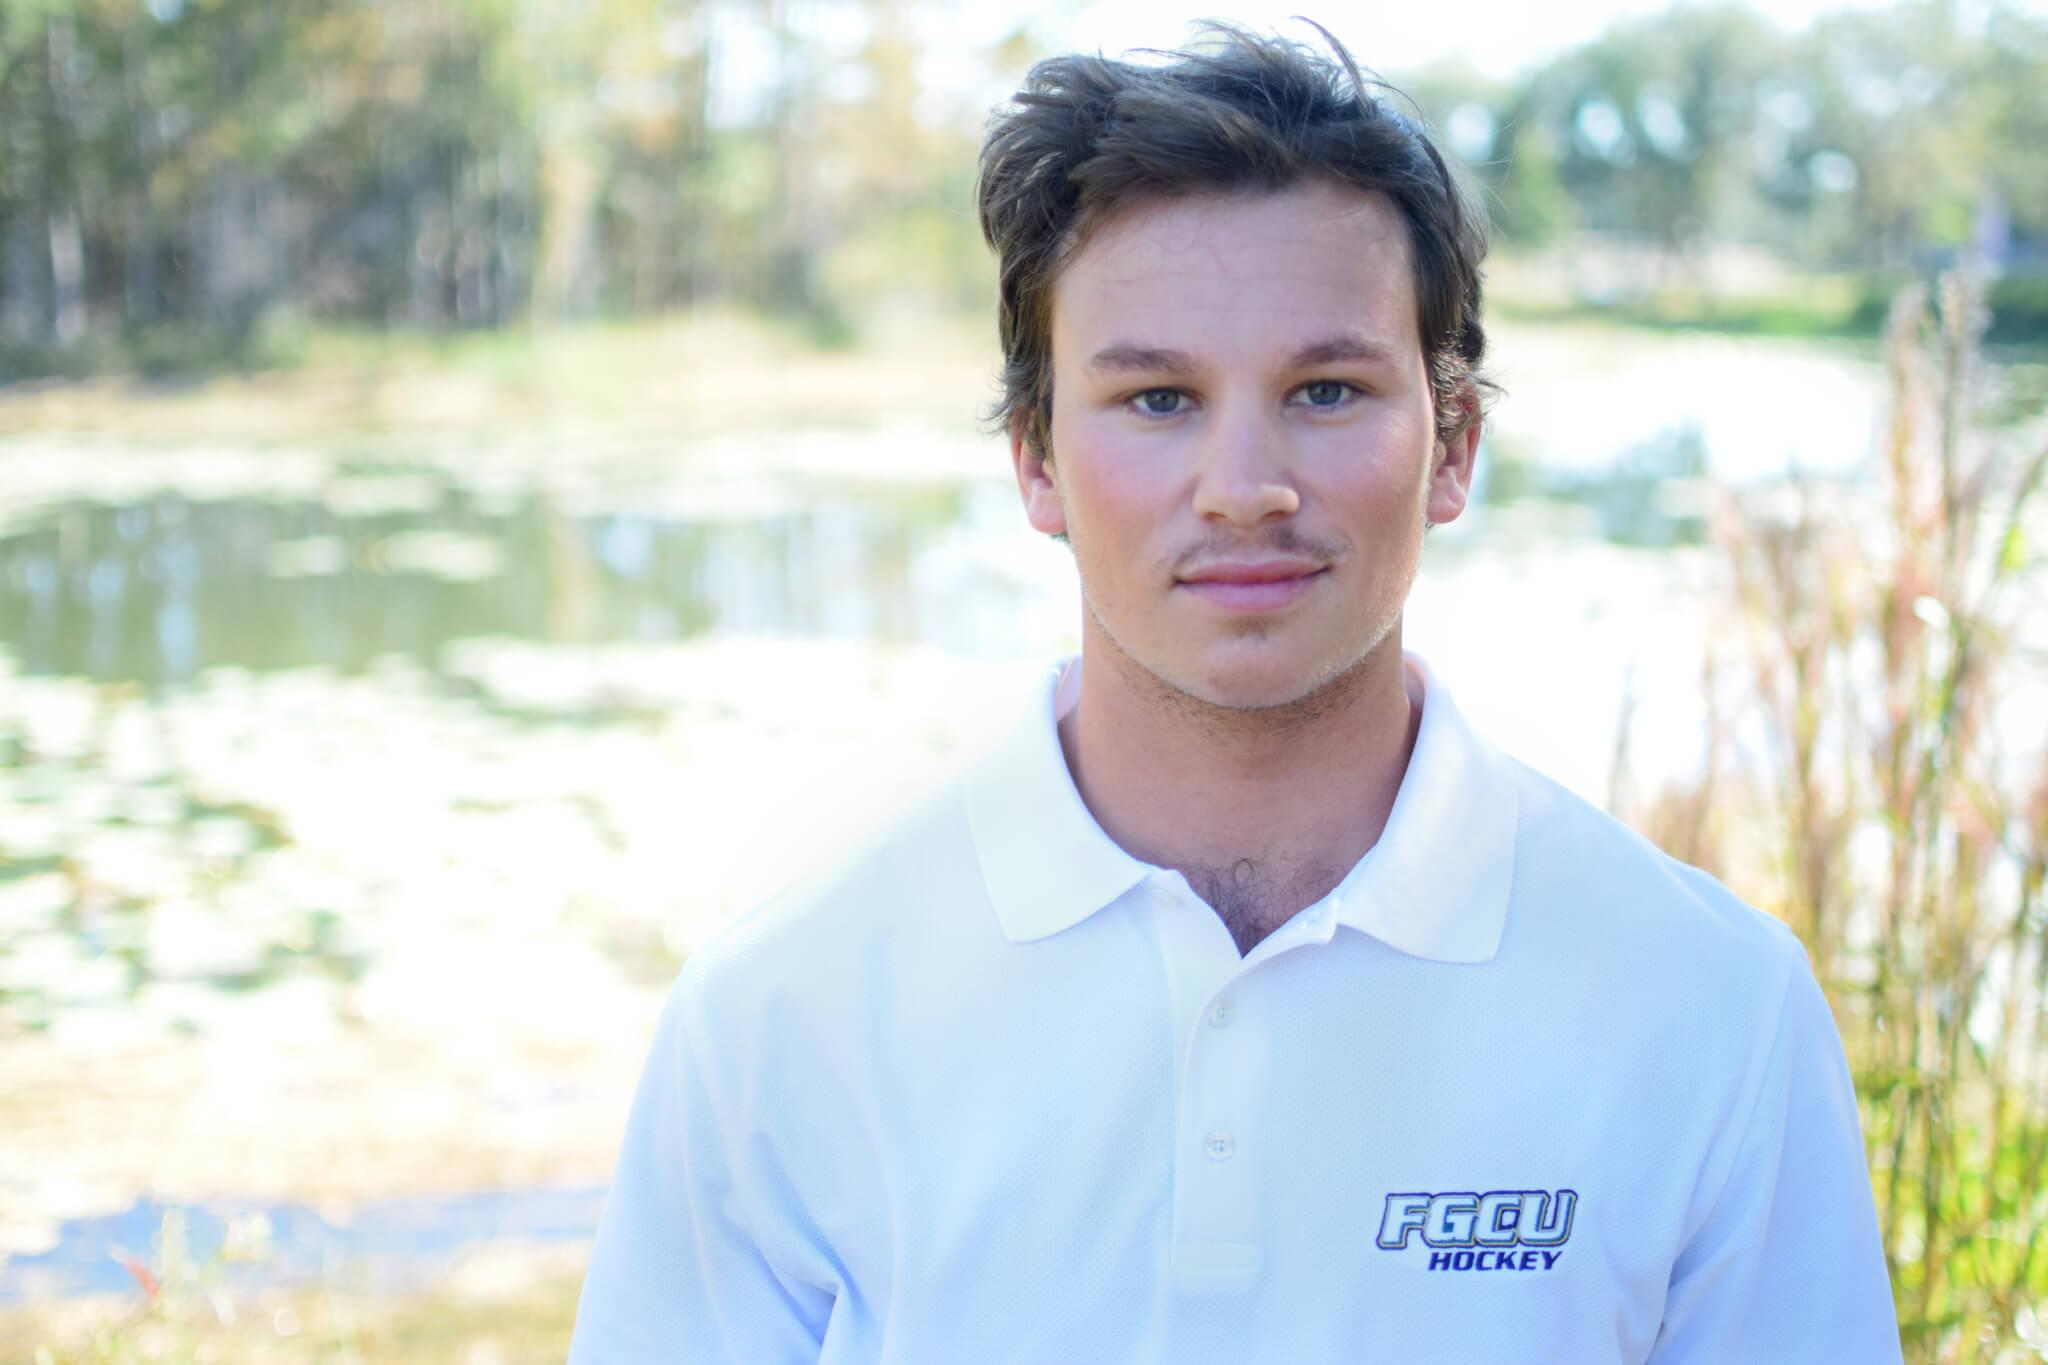 FGCU DII hockey senior has goals on and off the ice